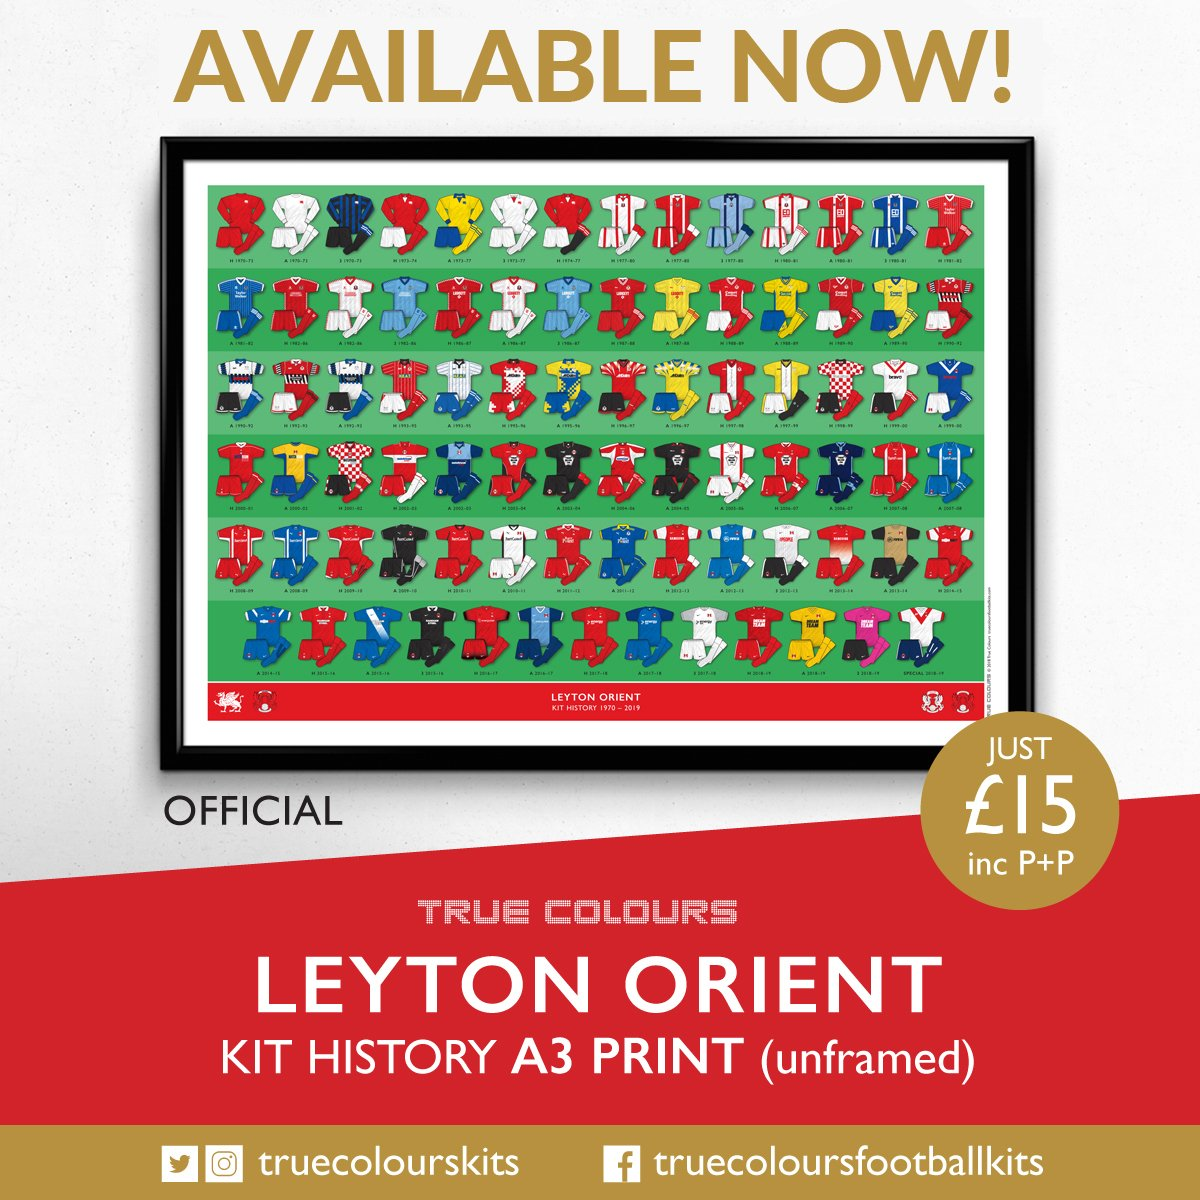 LEYTON ORIENT A3 unframed kit history prints available to buy now!  Professionally illustrated and printed. 74307f2ef